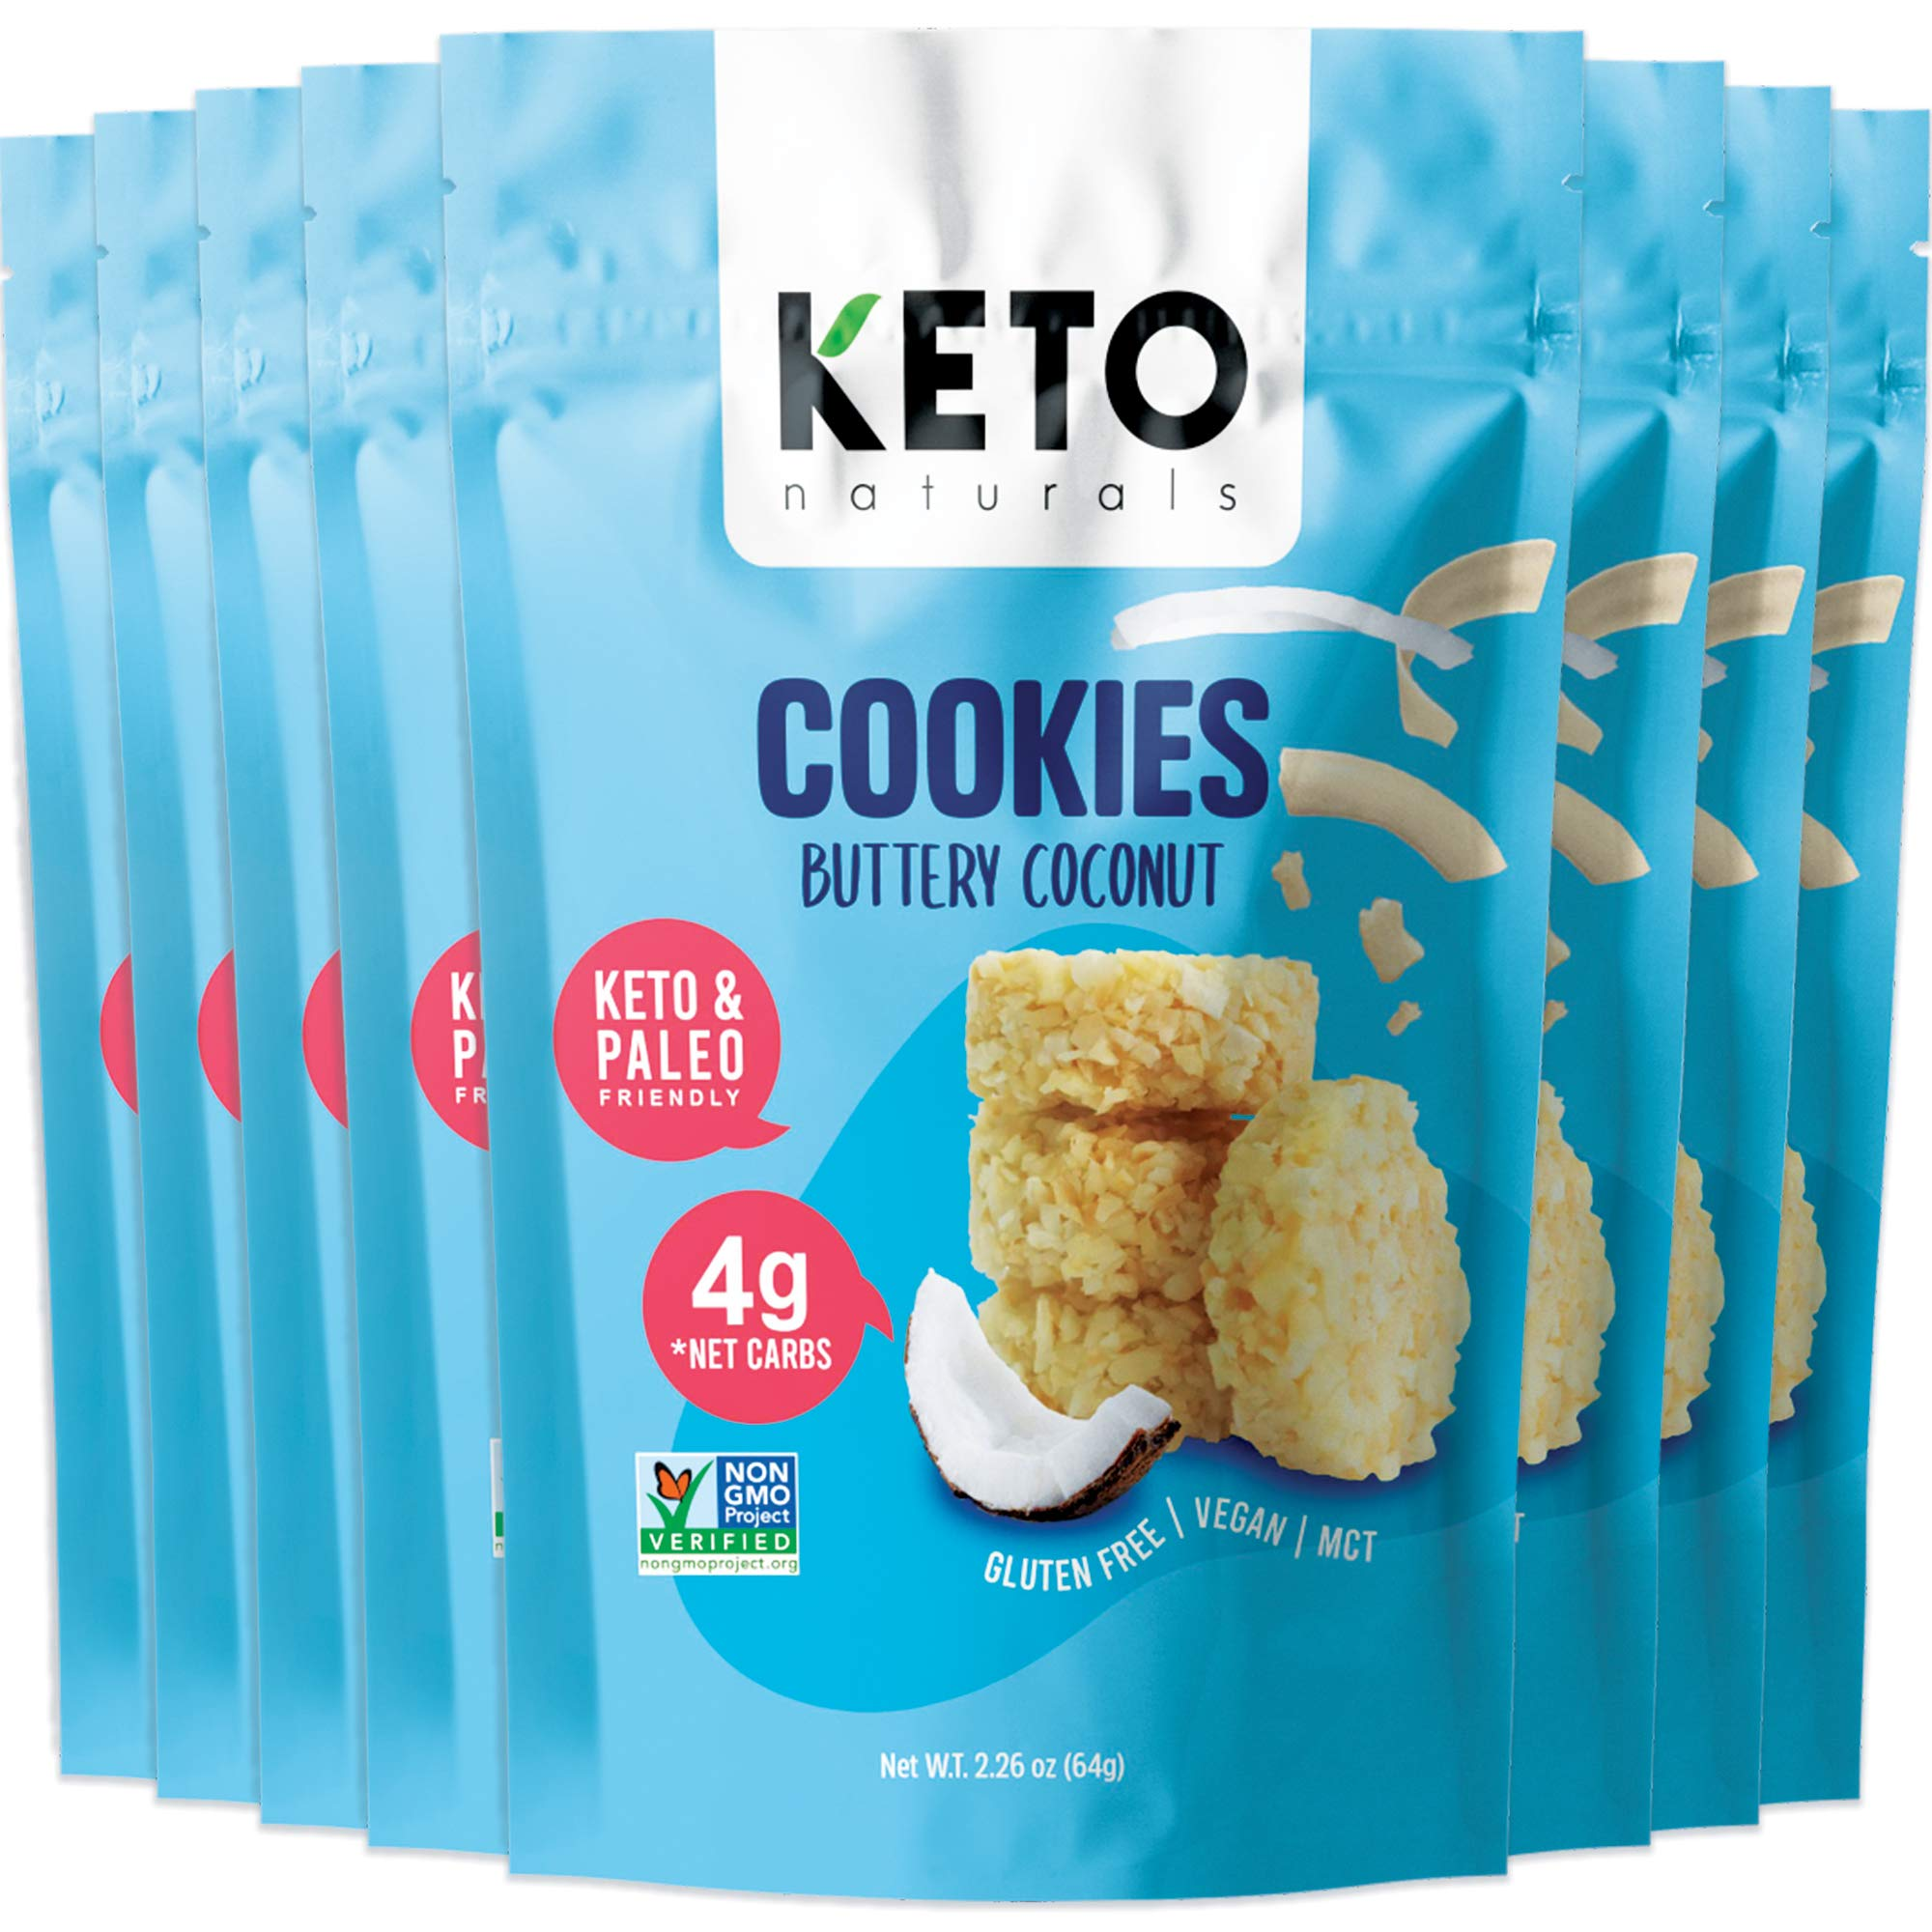 Keto Cookies Buttery Coconut, Healthy Snacks, Keto Friendly, Gluten Free, Low Carb, Healthy Snack - Sweet, Diet Friendly Dessert – Ketogenic Food with Natural Ingredients, Pack of 8 x 2.25 oz Bags.